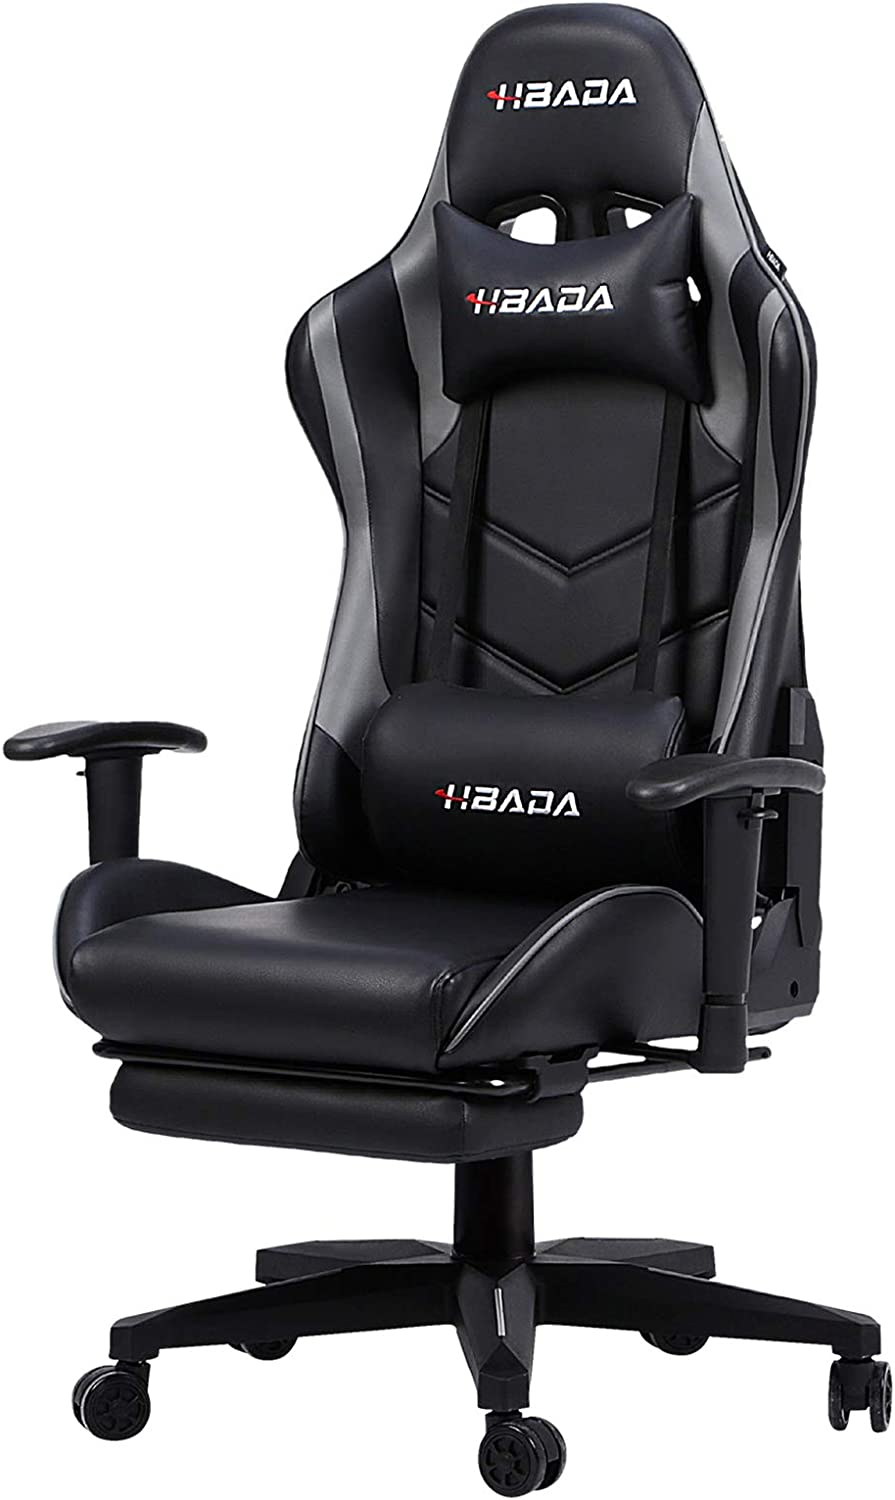 Challenge the lowest price of Japan Hbada Gaming Chair Ergonomic Racing Ranking TOP14 High Computer Cha Back